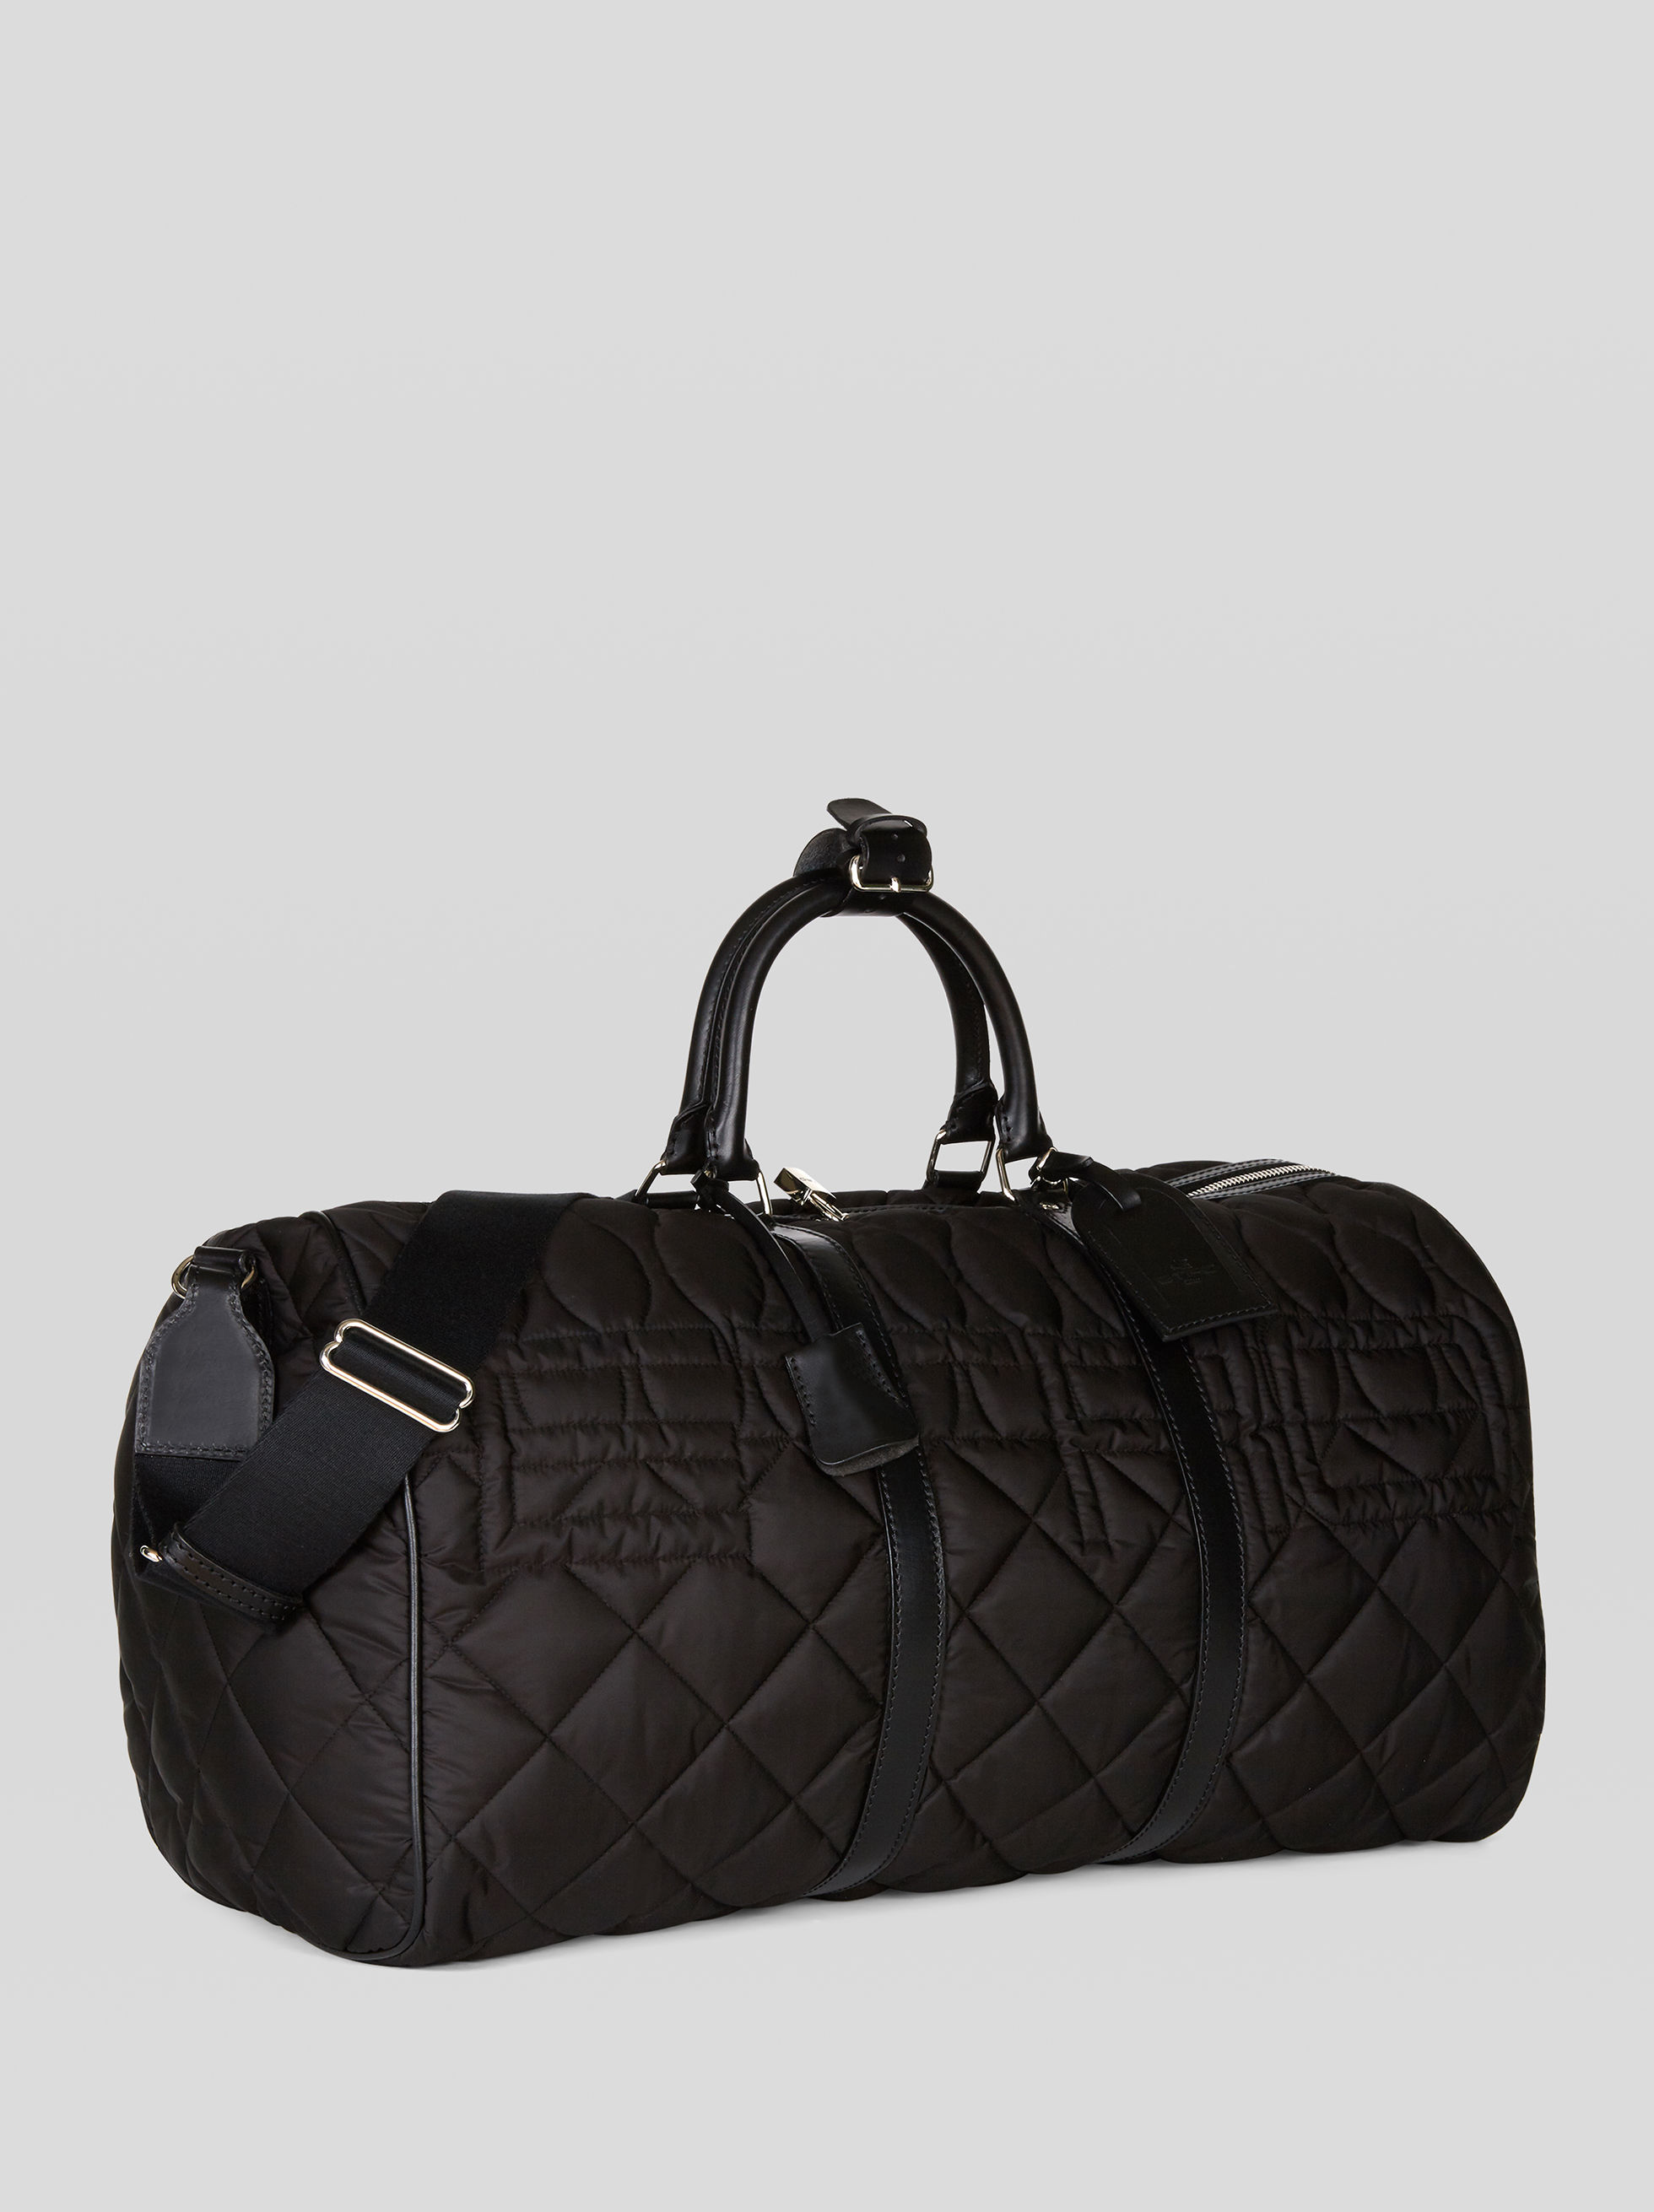 MATELASSÉ NYLON TRAVEL BAG WITH LOGO